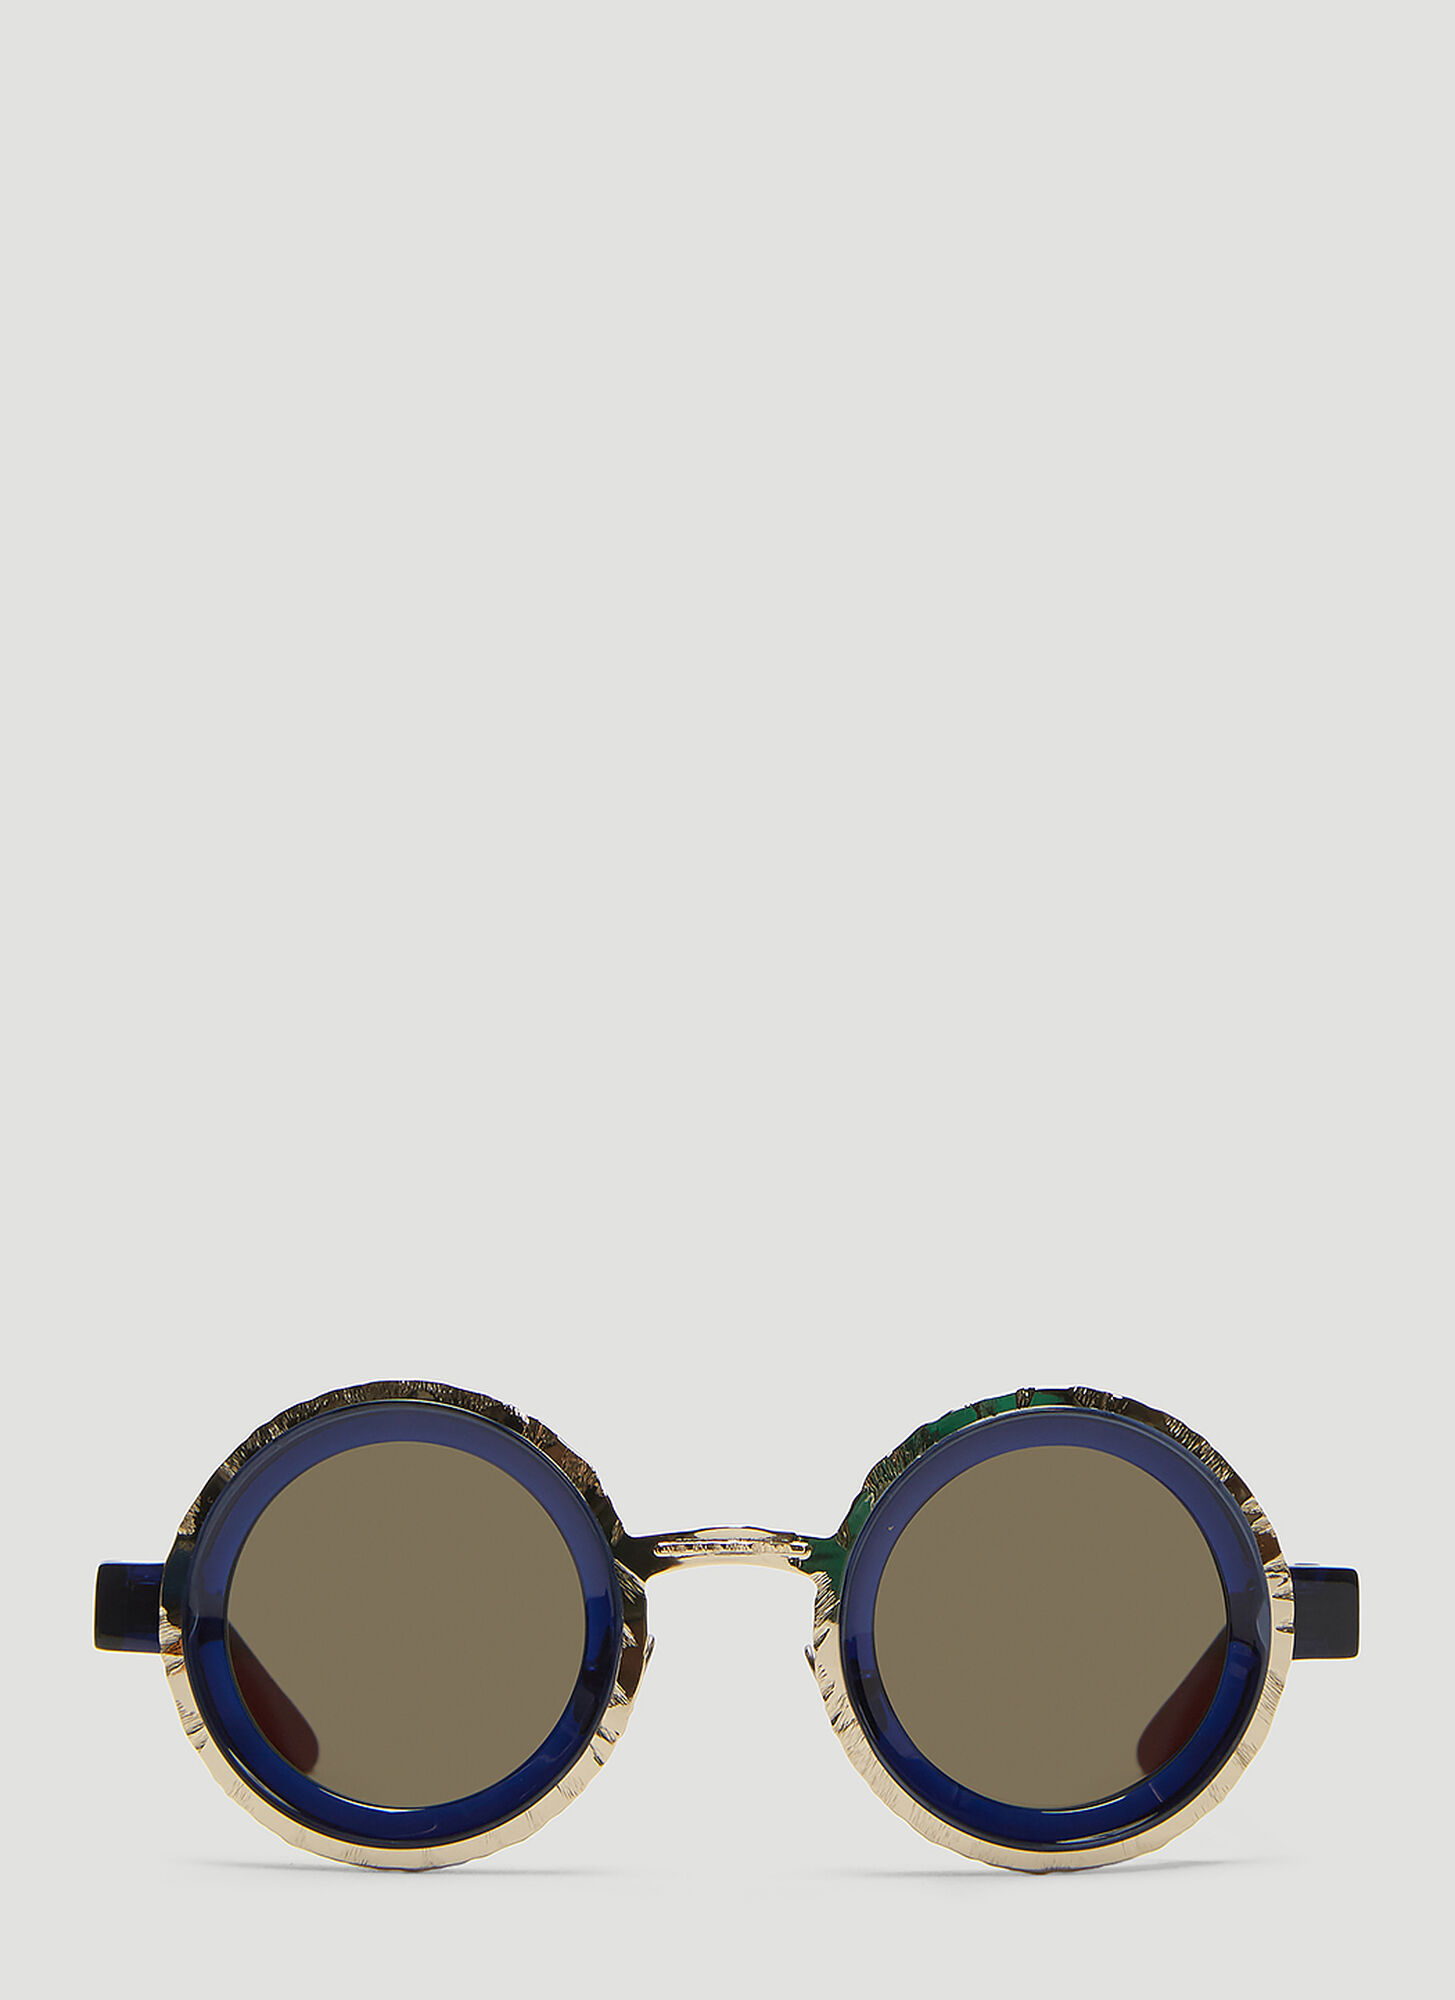 Kuboraum Mask Z3 Chiselled Round Sunglasses in Navy